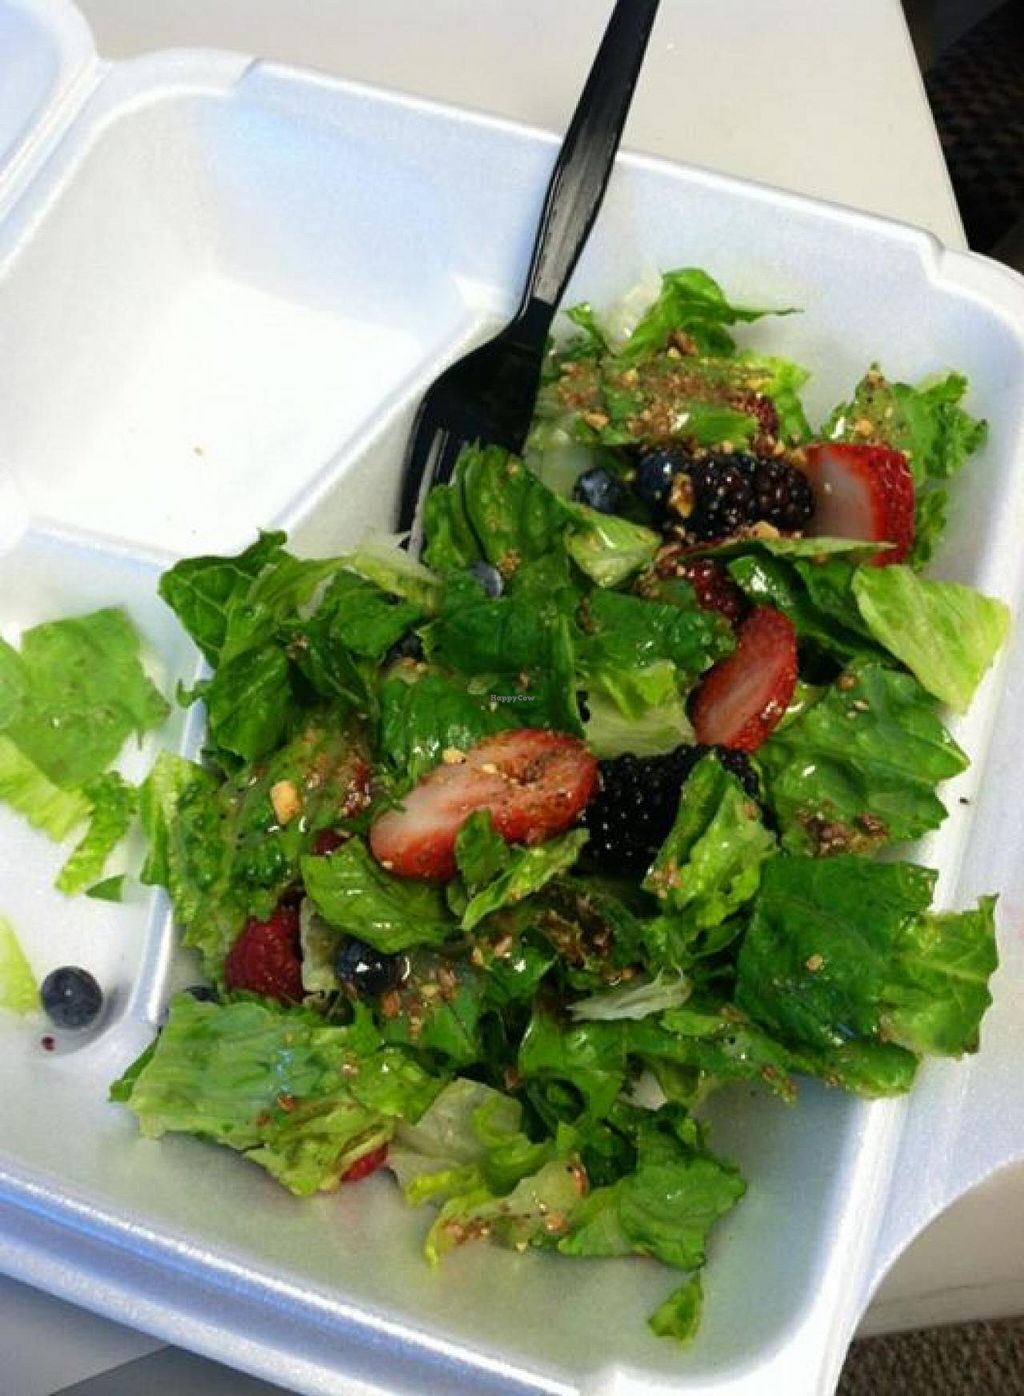 """Photo of Cafe Zupas  by <a href=""""/members/profile/Meggie%20and%20Ben"""">Meggie and Ben</a> <br/>Berry salad <br/> August 22, 2014  - <a href='/contact/abuse/image/50457/77915'>Report</a>"""